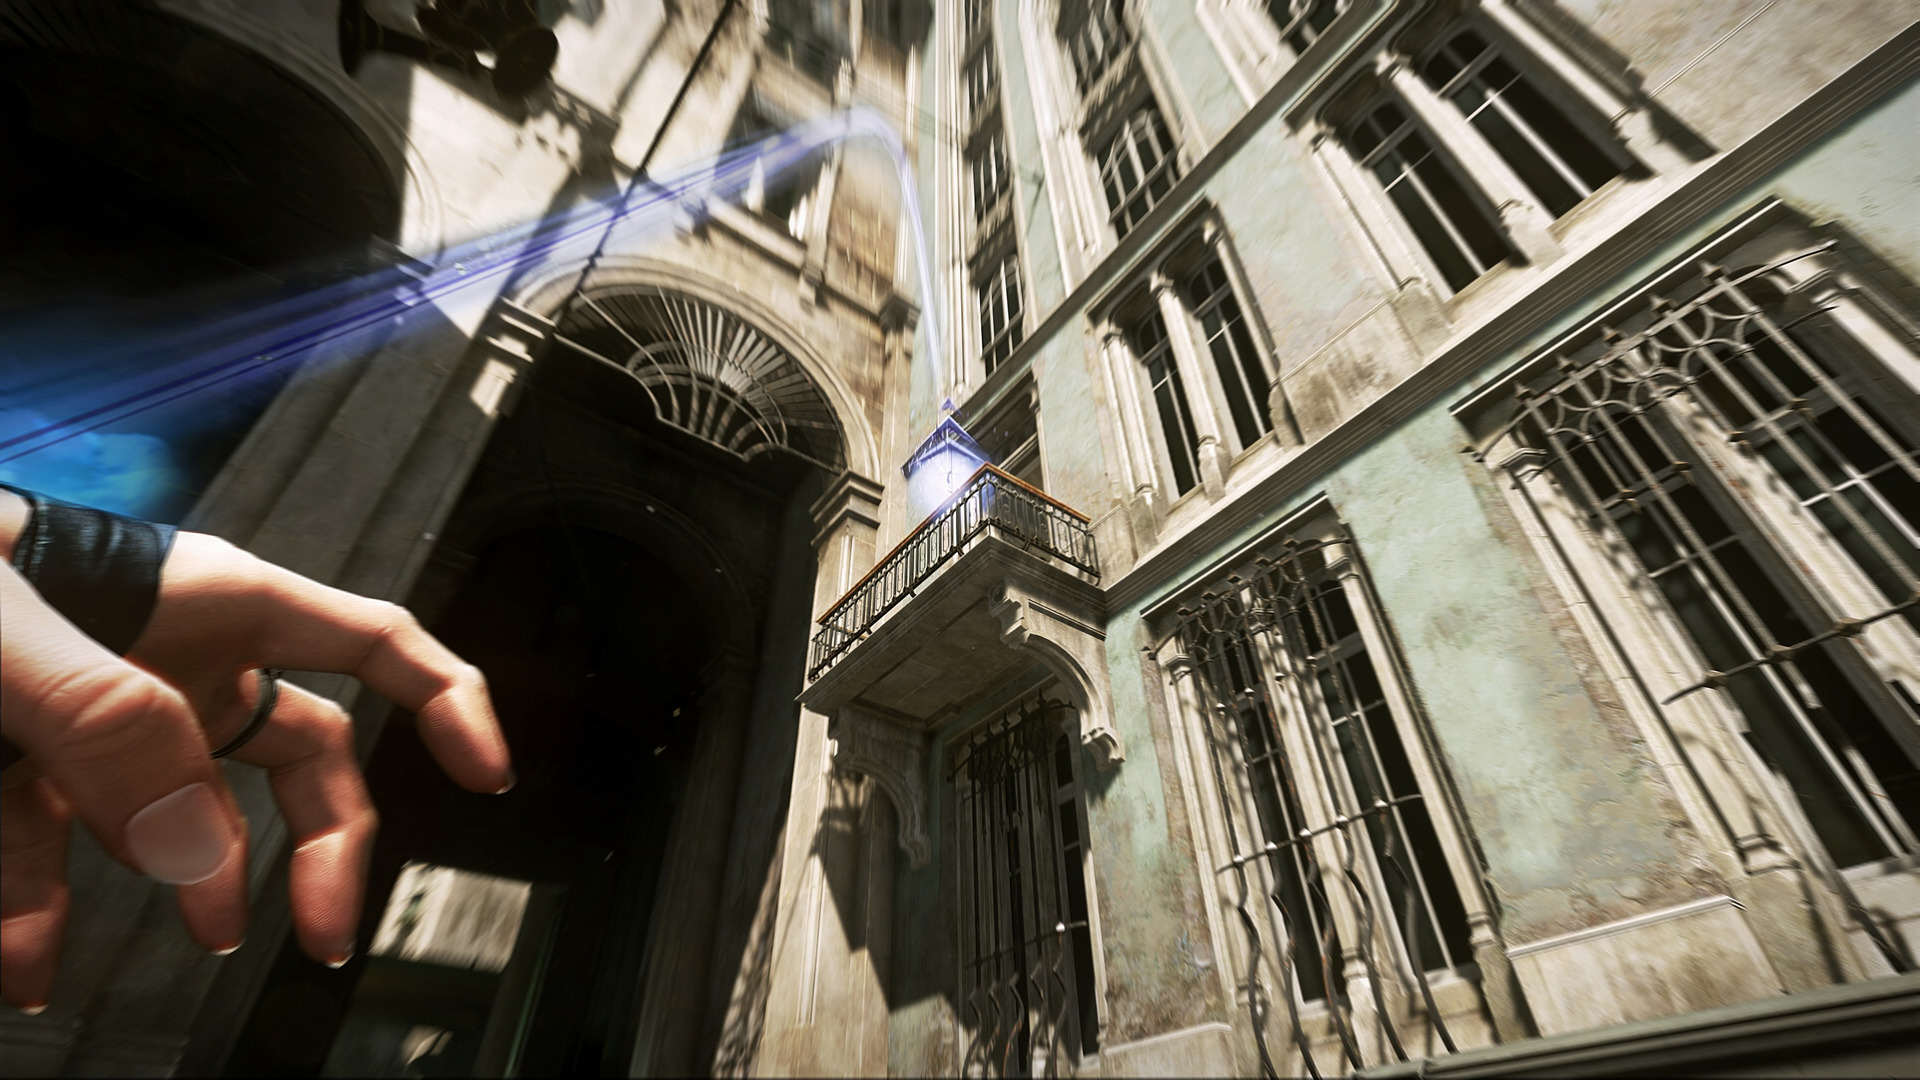 1tVSDiU Check Out These Gorgeous New Dishonored 2 Screens